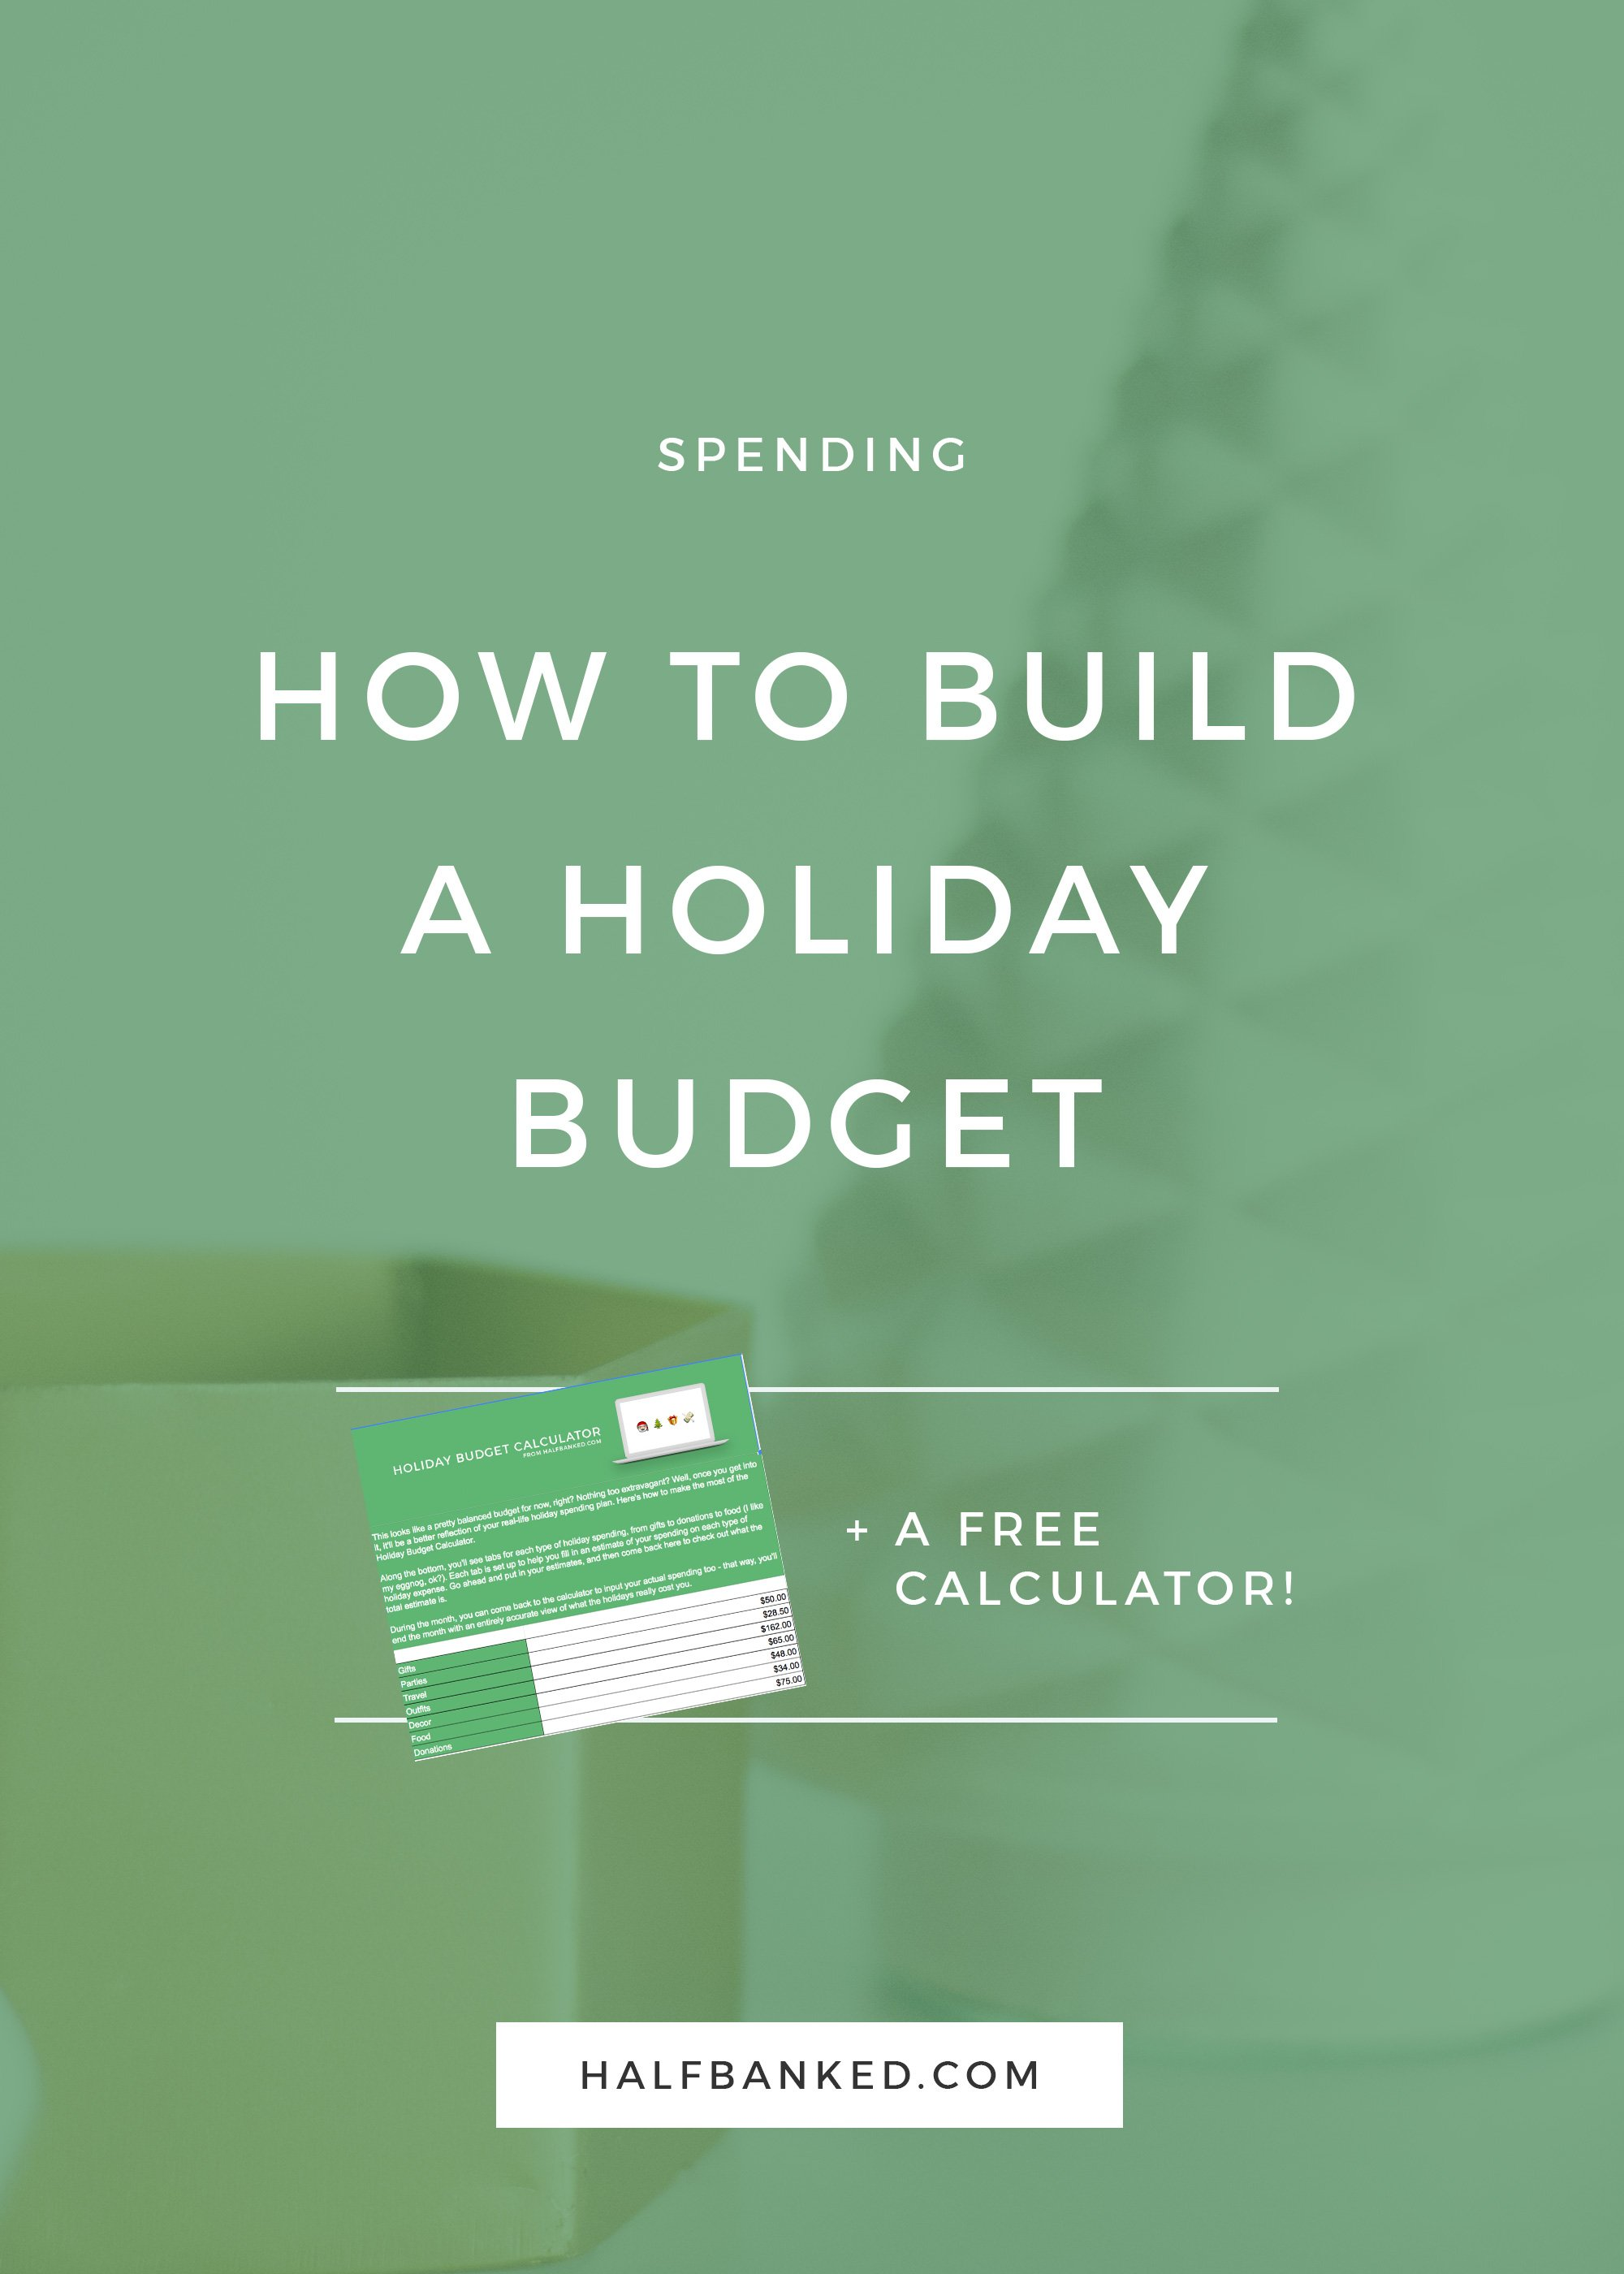 How To Build a Holiday Budget That Actually Works - Half Banked